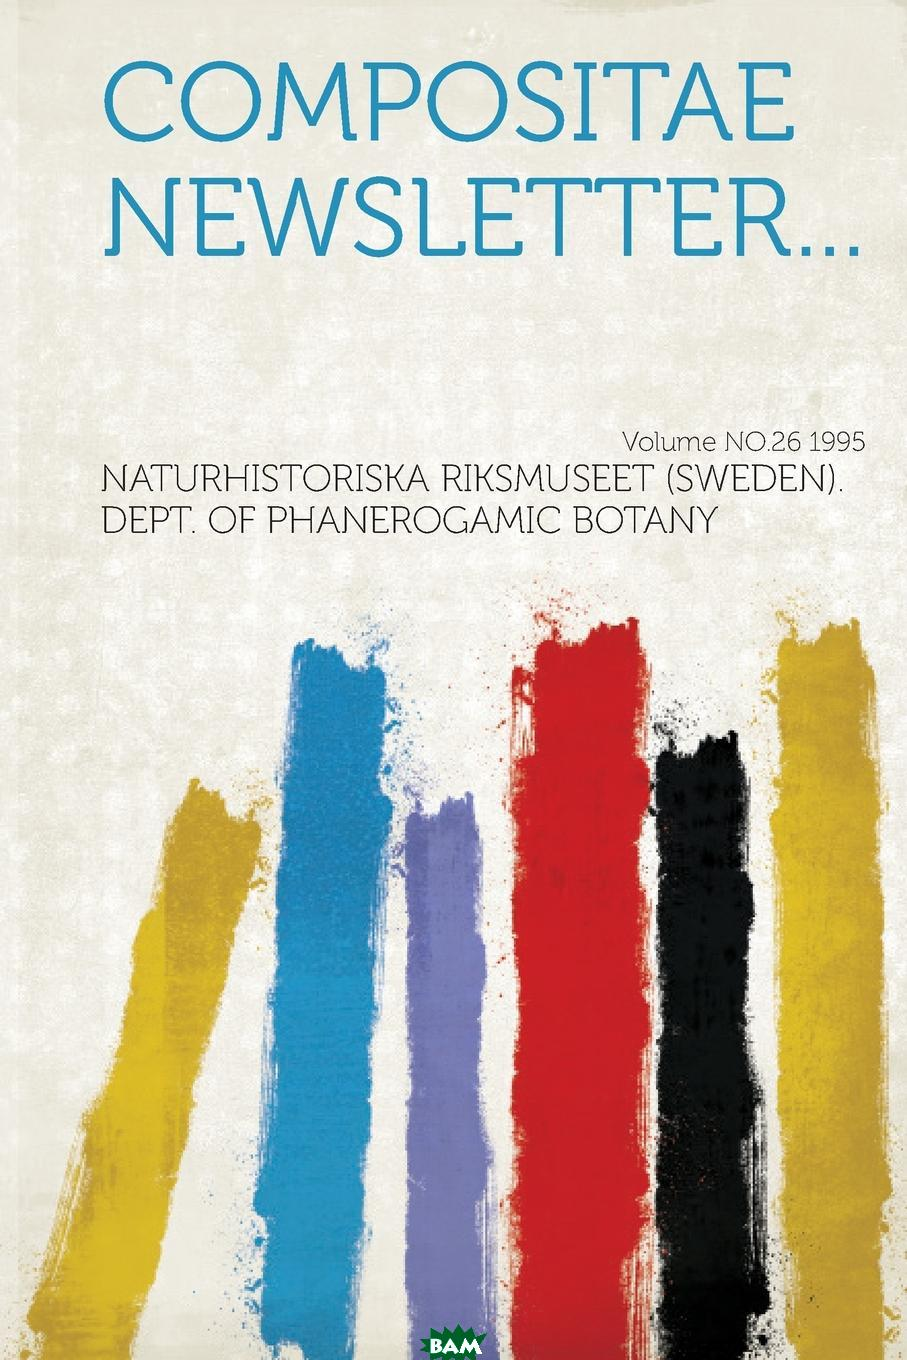 Compositae Newsletter... Volume No.26 1995